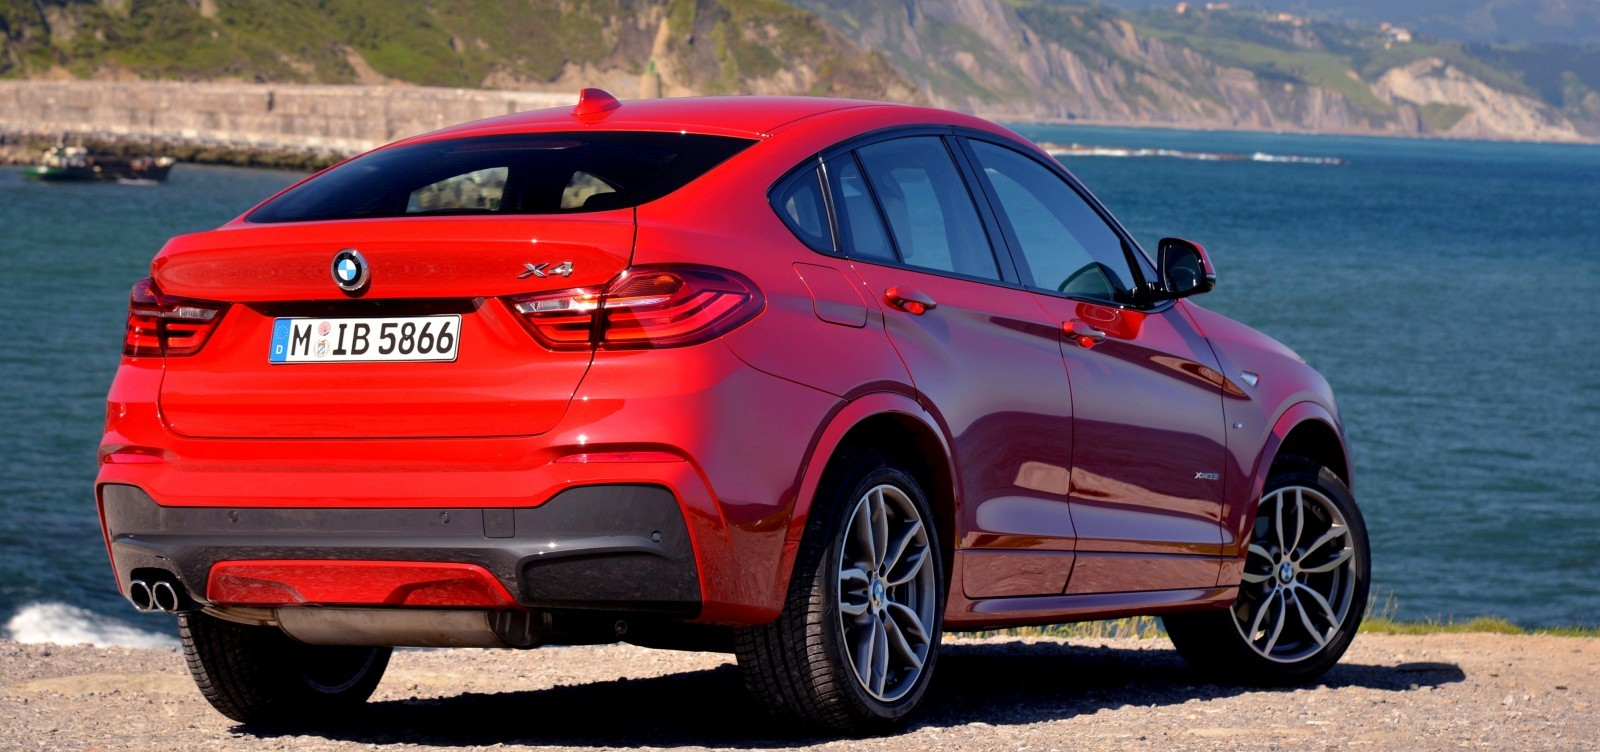 Update2 Debut Photos - 2015 BMW X4 Arriving Now to USA BMW Dealers 71